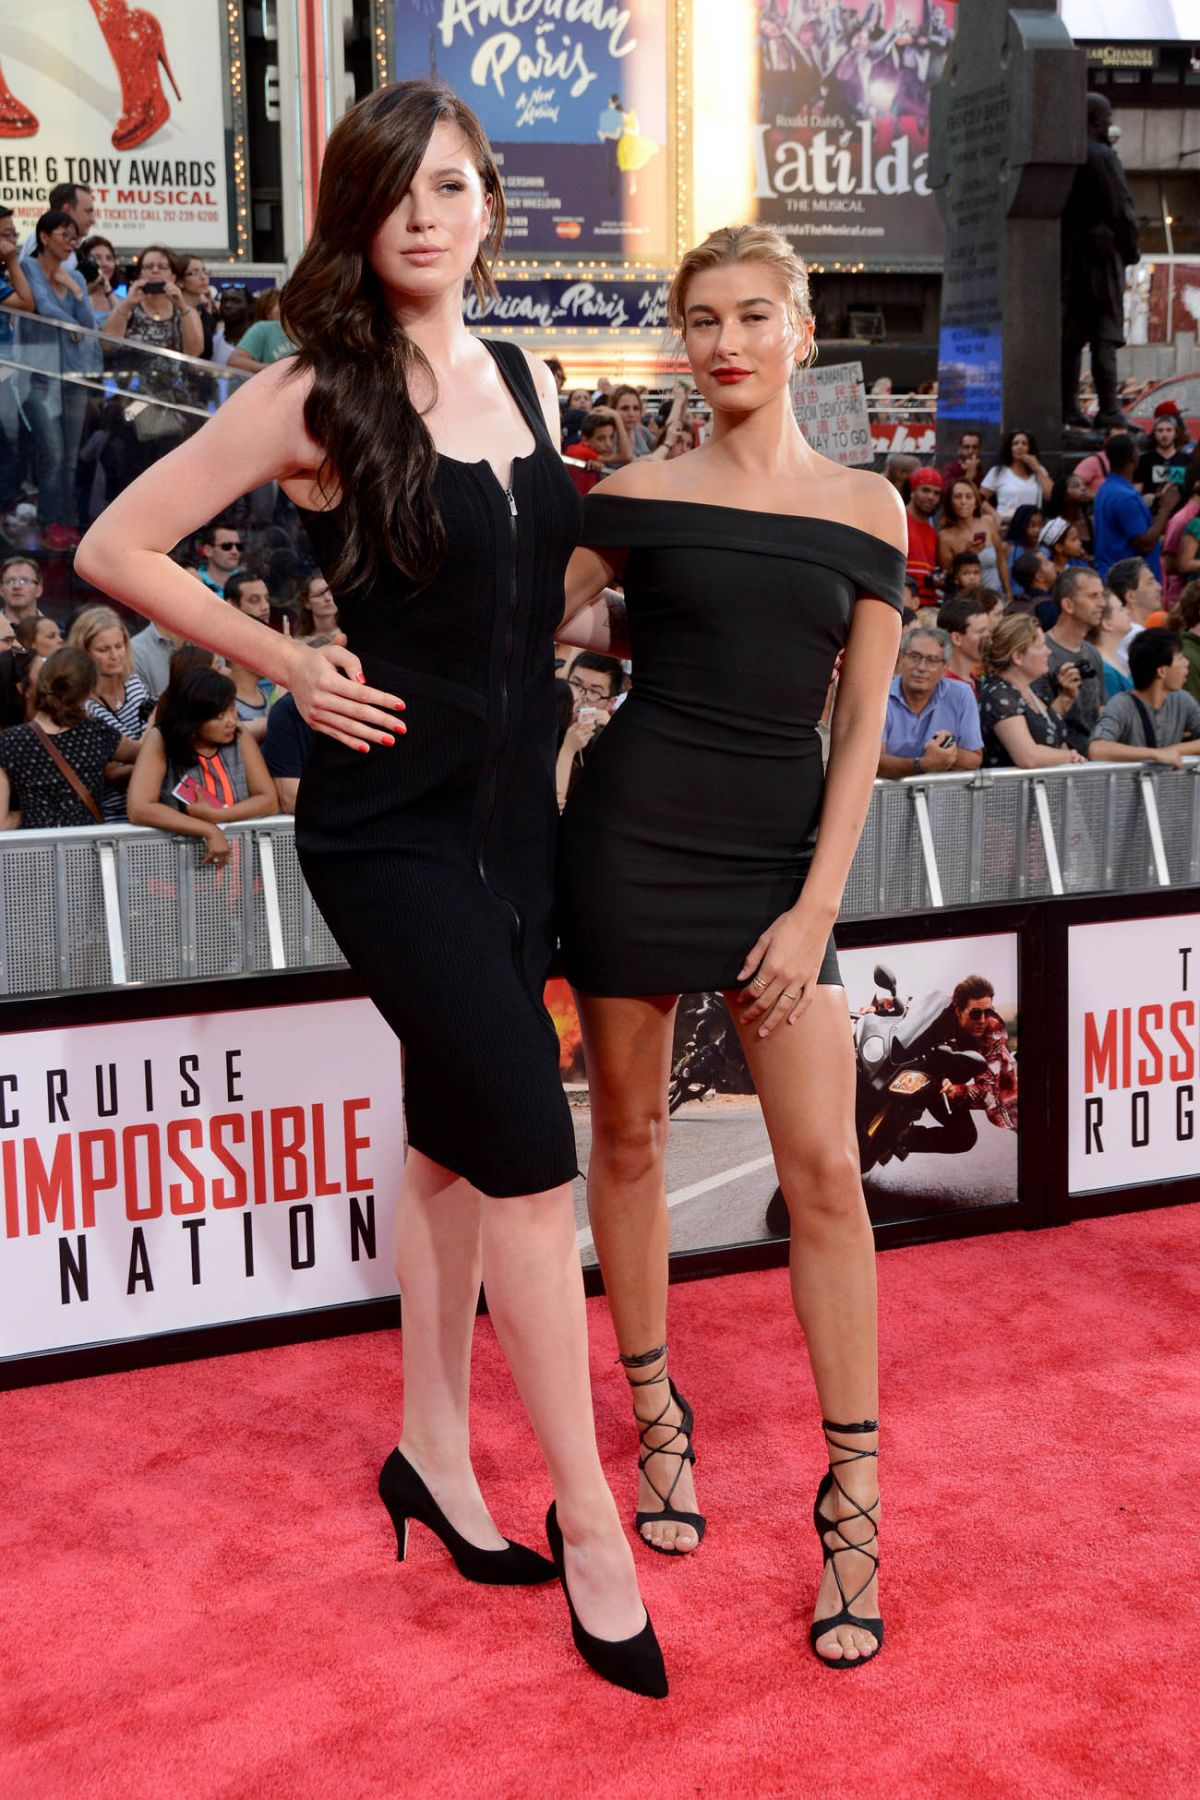 HAILEY, IRELAND and ALAIA BALDWIN at Mission: Impossible – Rogue Nation Premiere in New